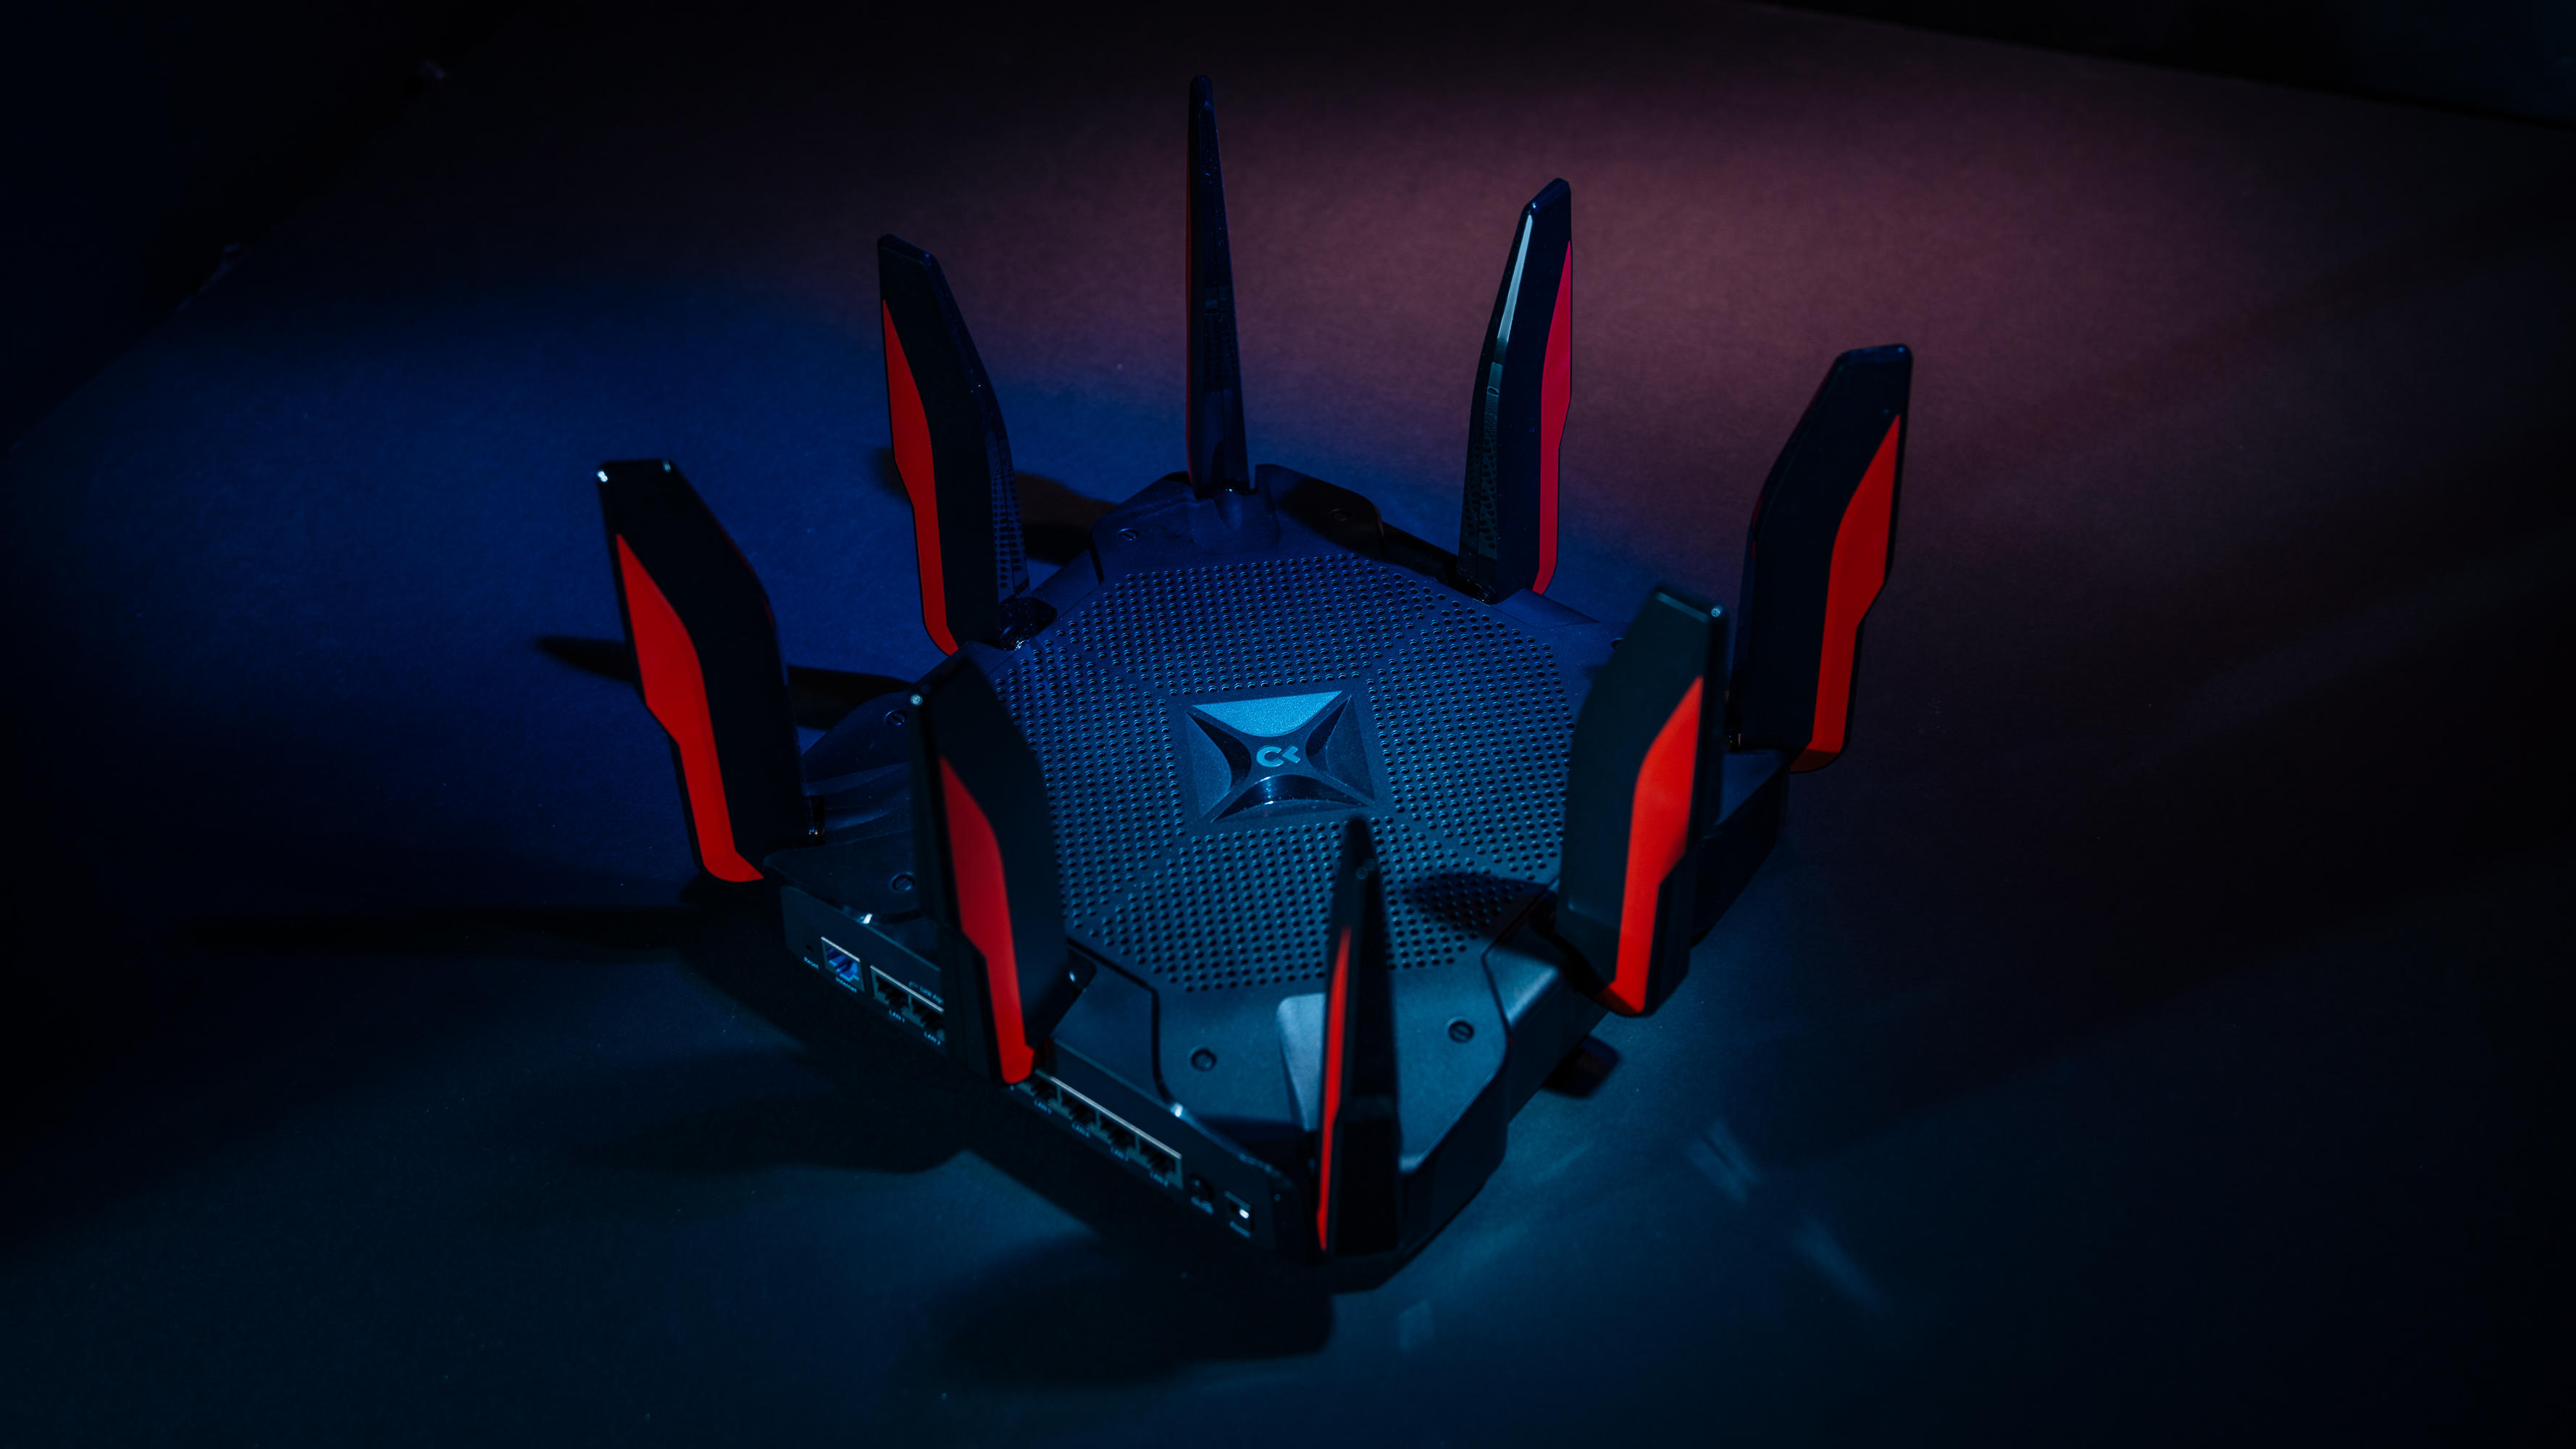 tp-link-archer-ax11000-wi-fi-6-router-wifi